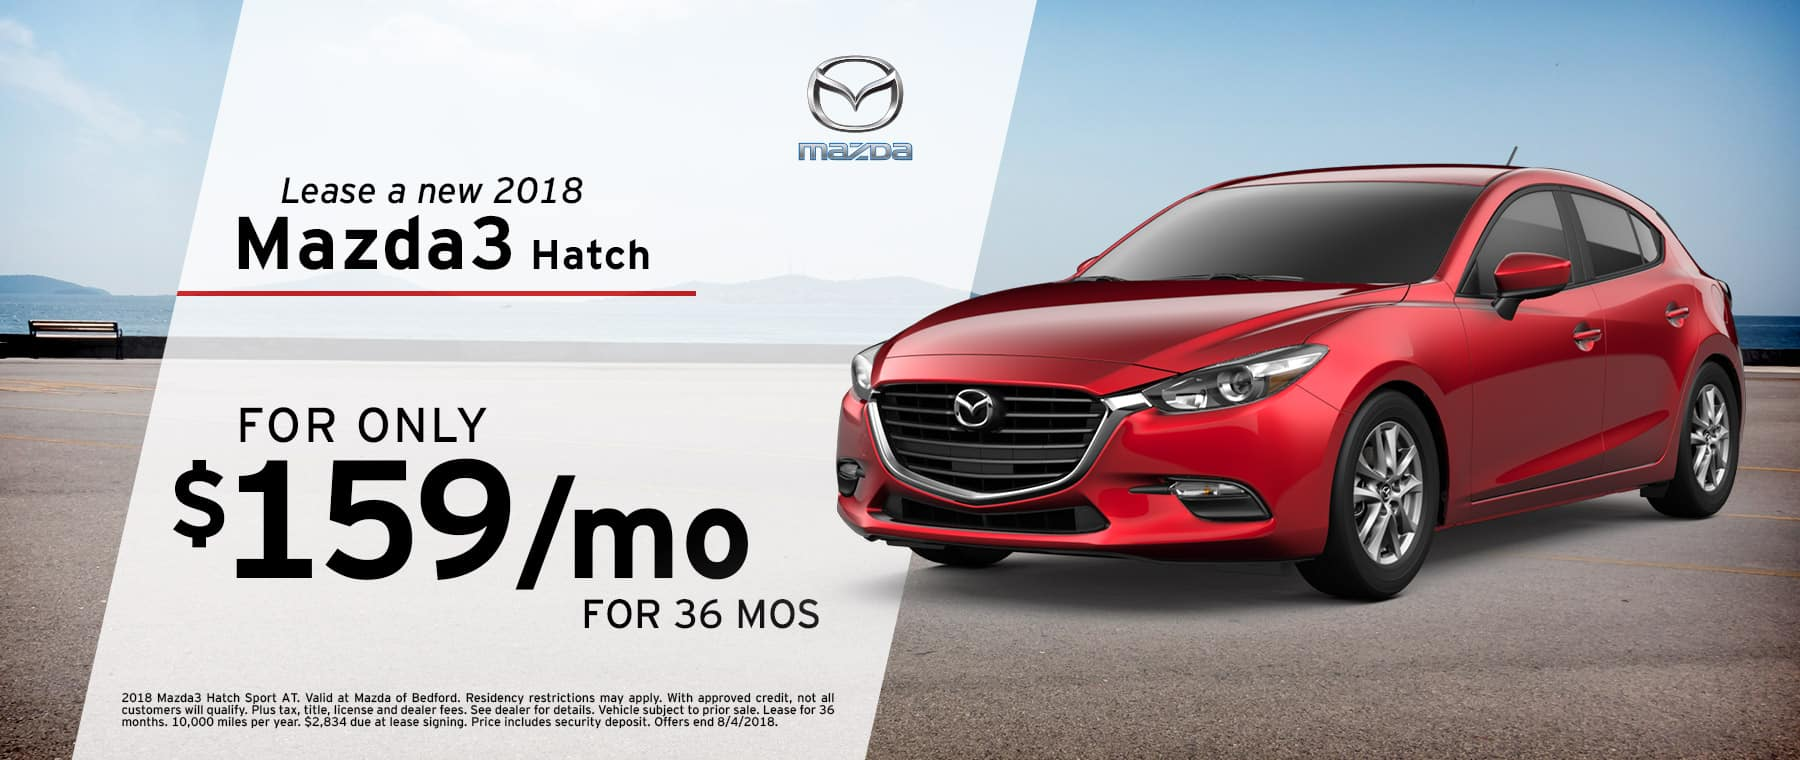 Mazda Bedford Specials | Mazda3 Hatch